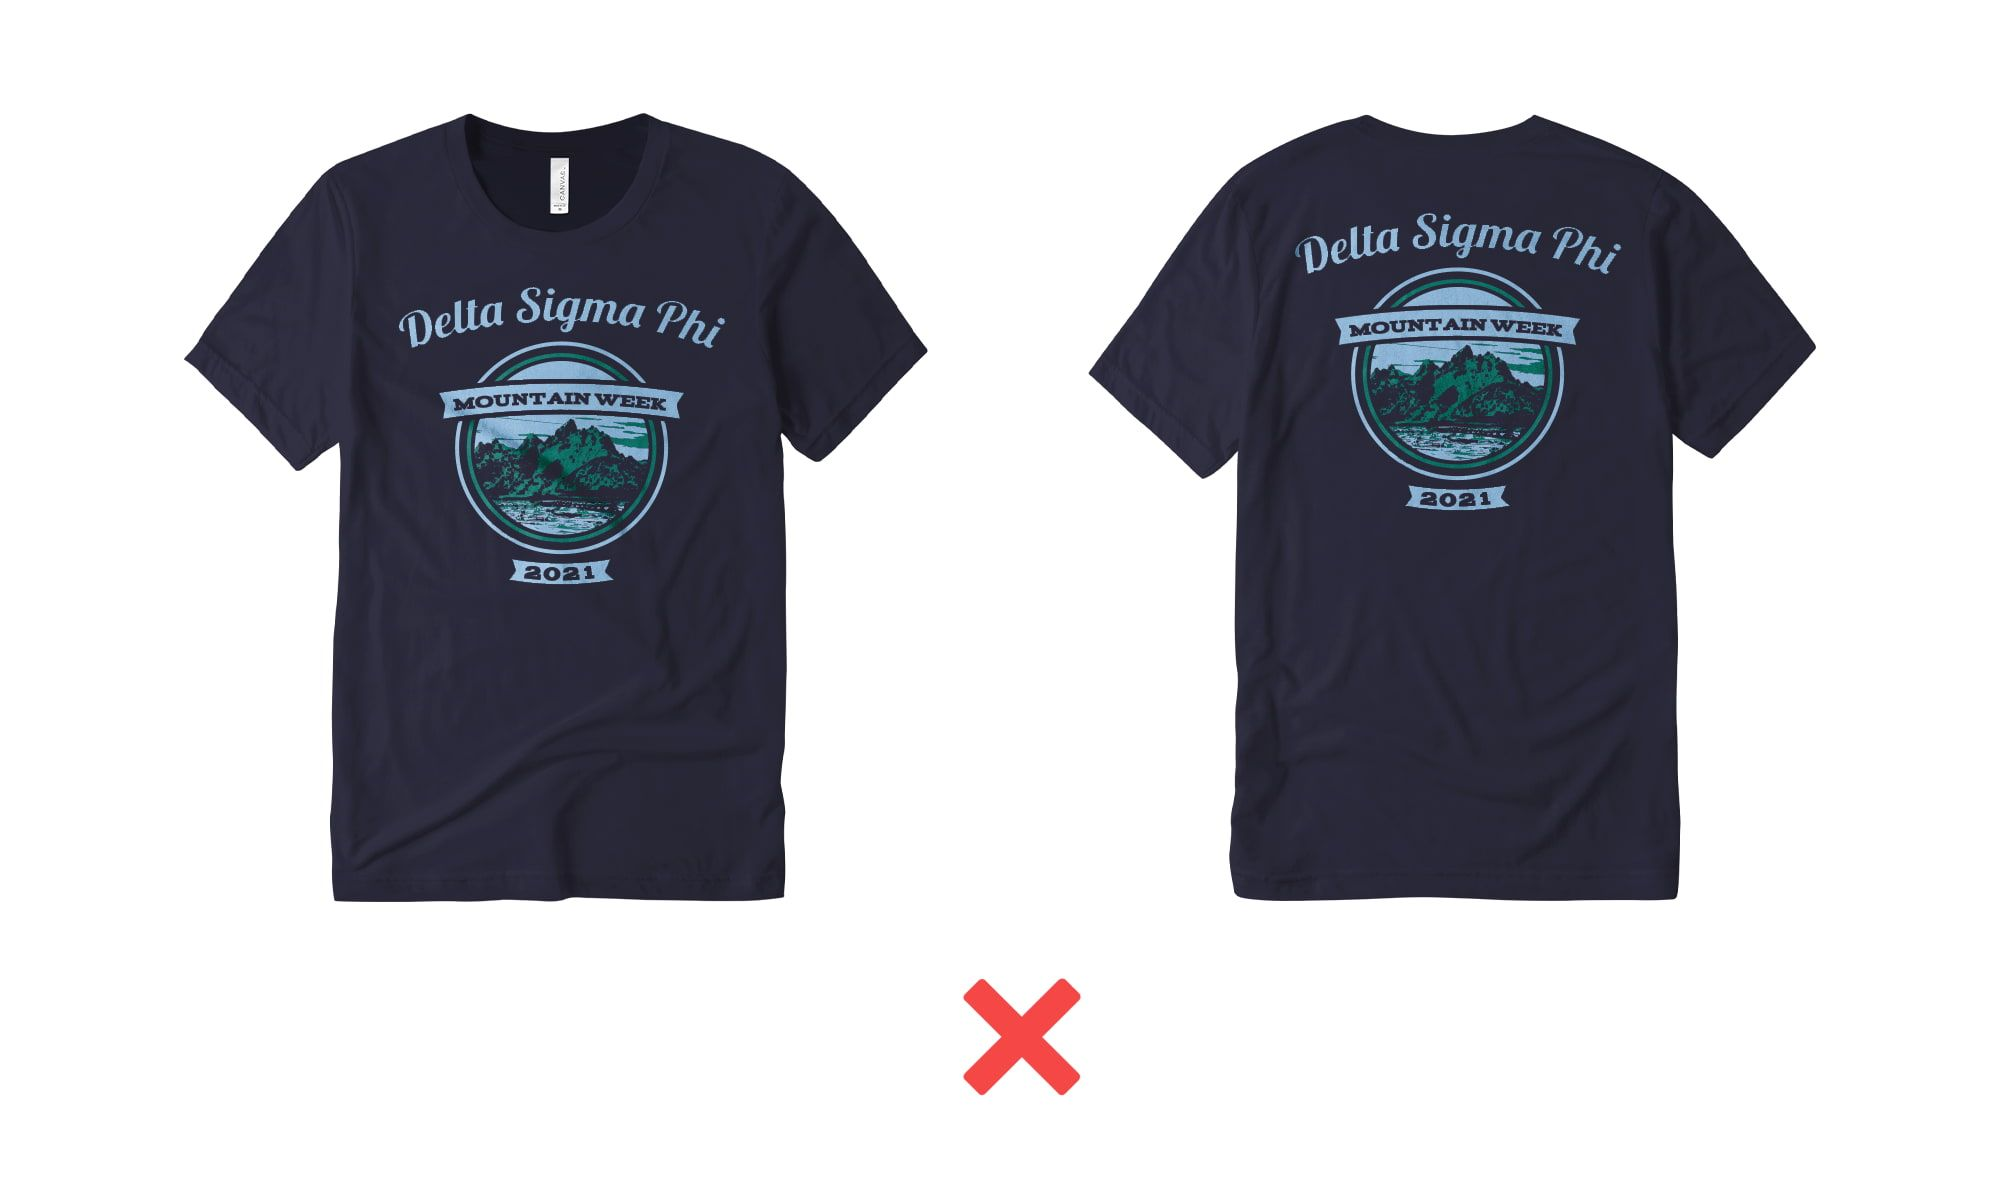 Example of t-shirt design with no variation in scale.